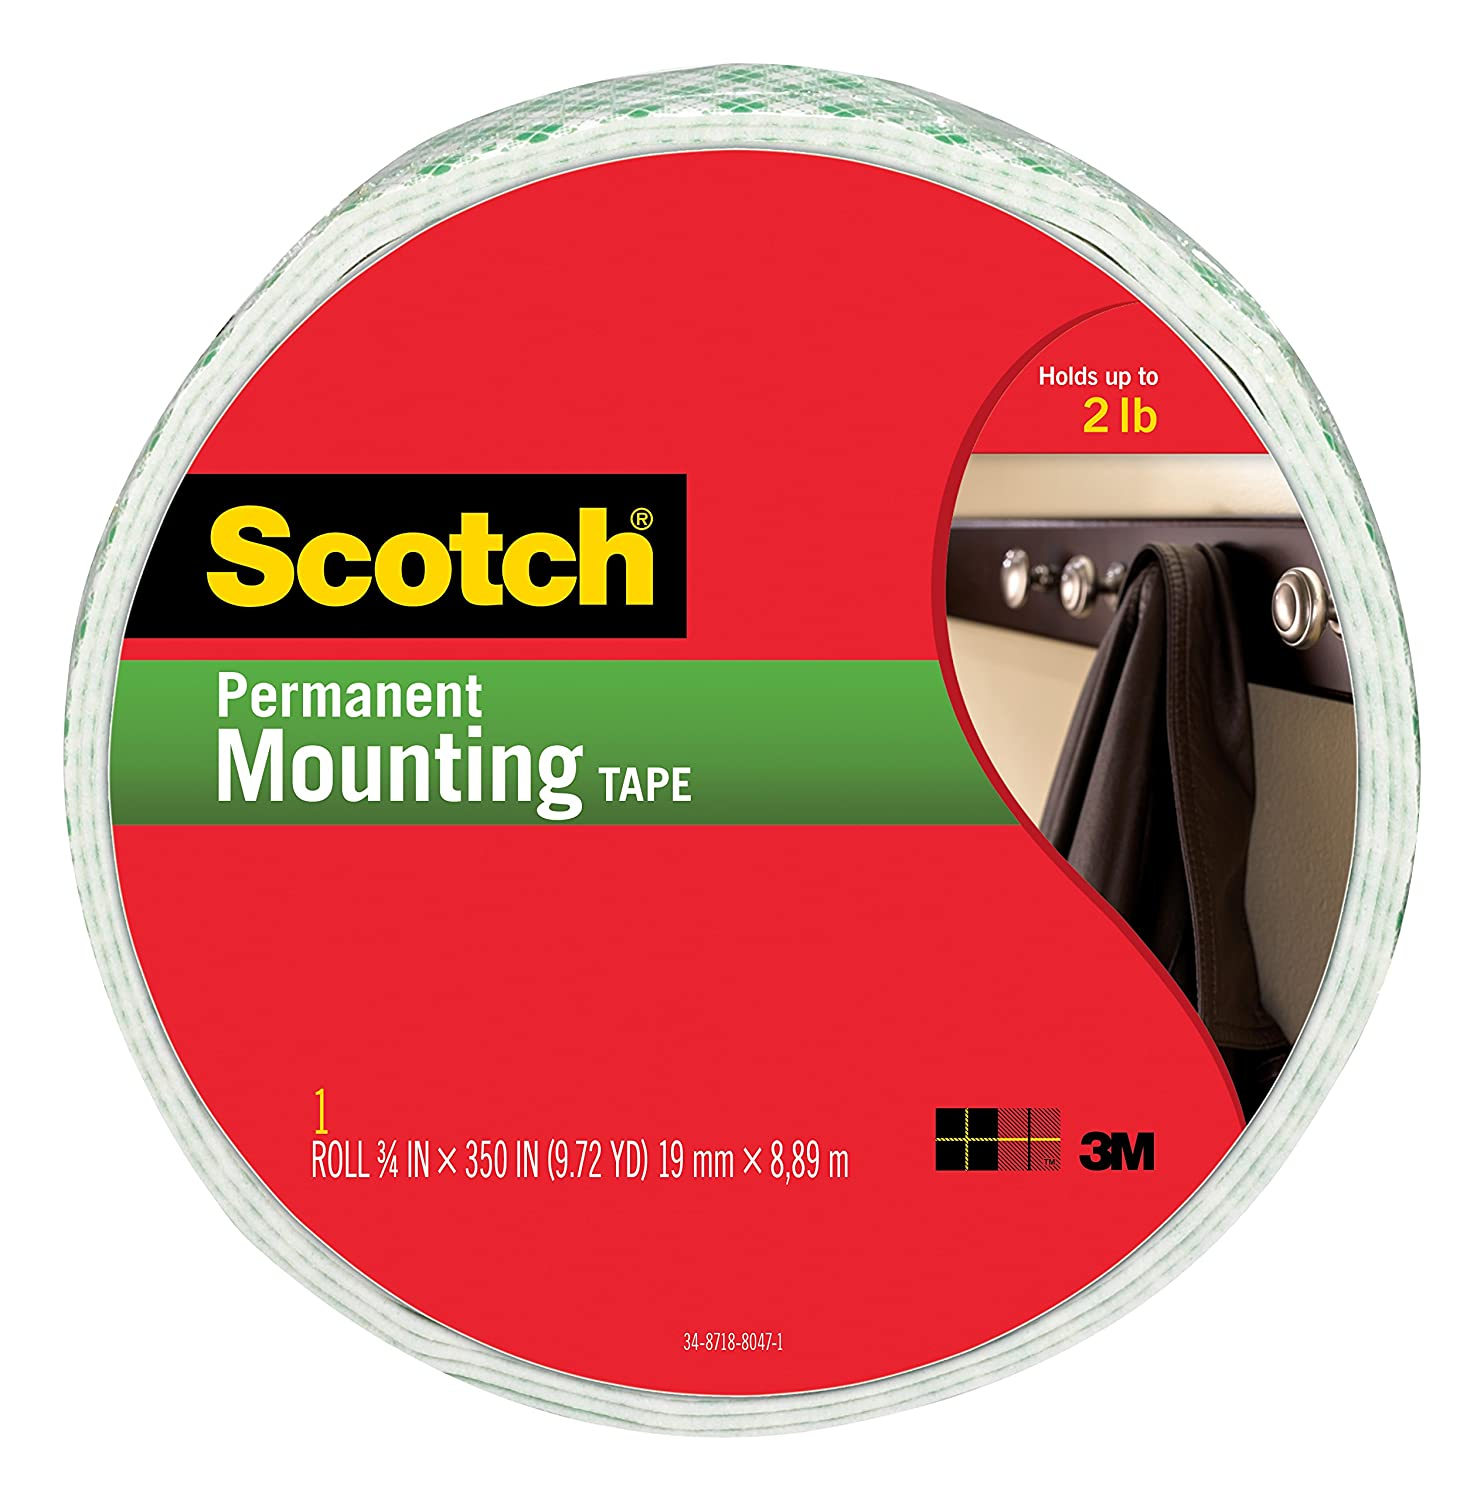 Scotch Indoor Mounting Tape, 0.75-inch x 350-inches, White, Holds up to 2 pounds, 1-Roll (110-Long)